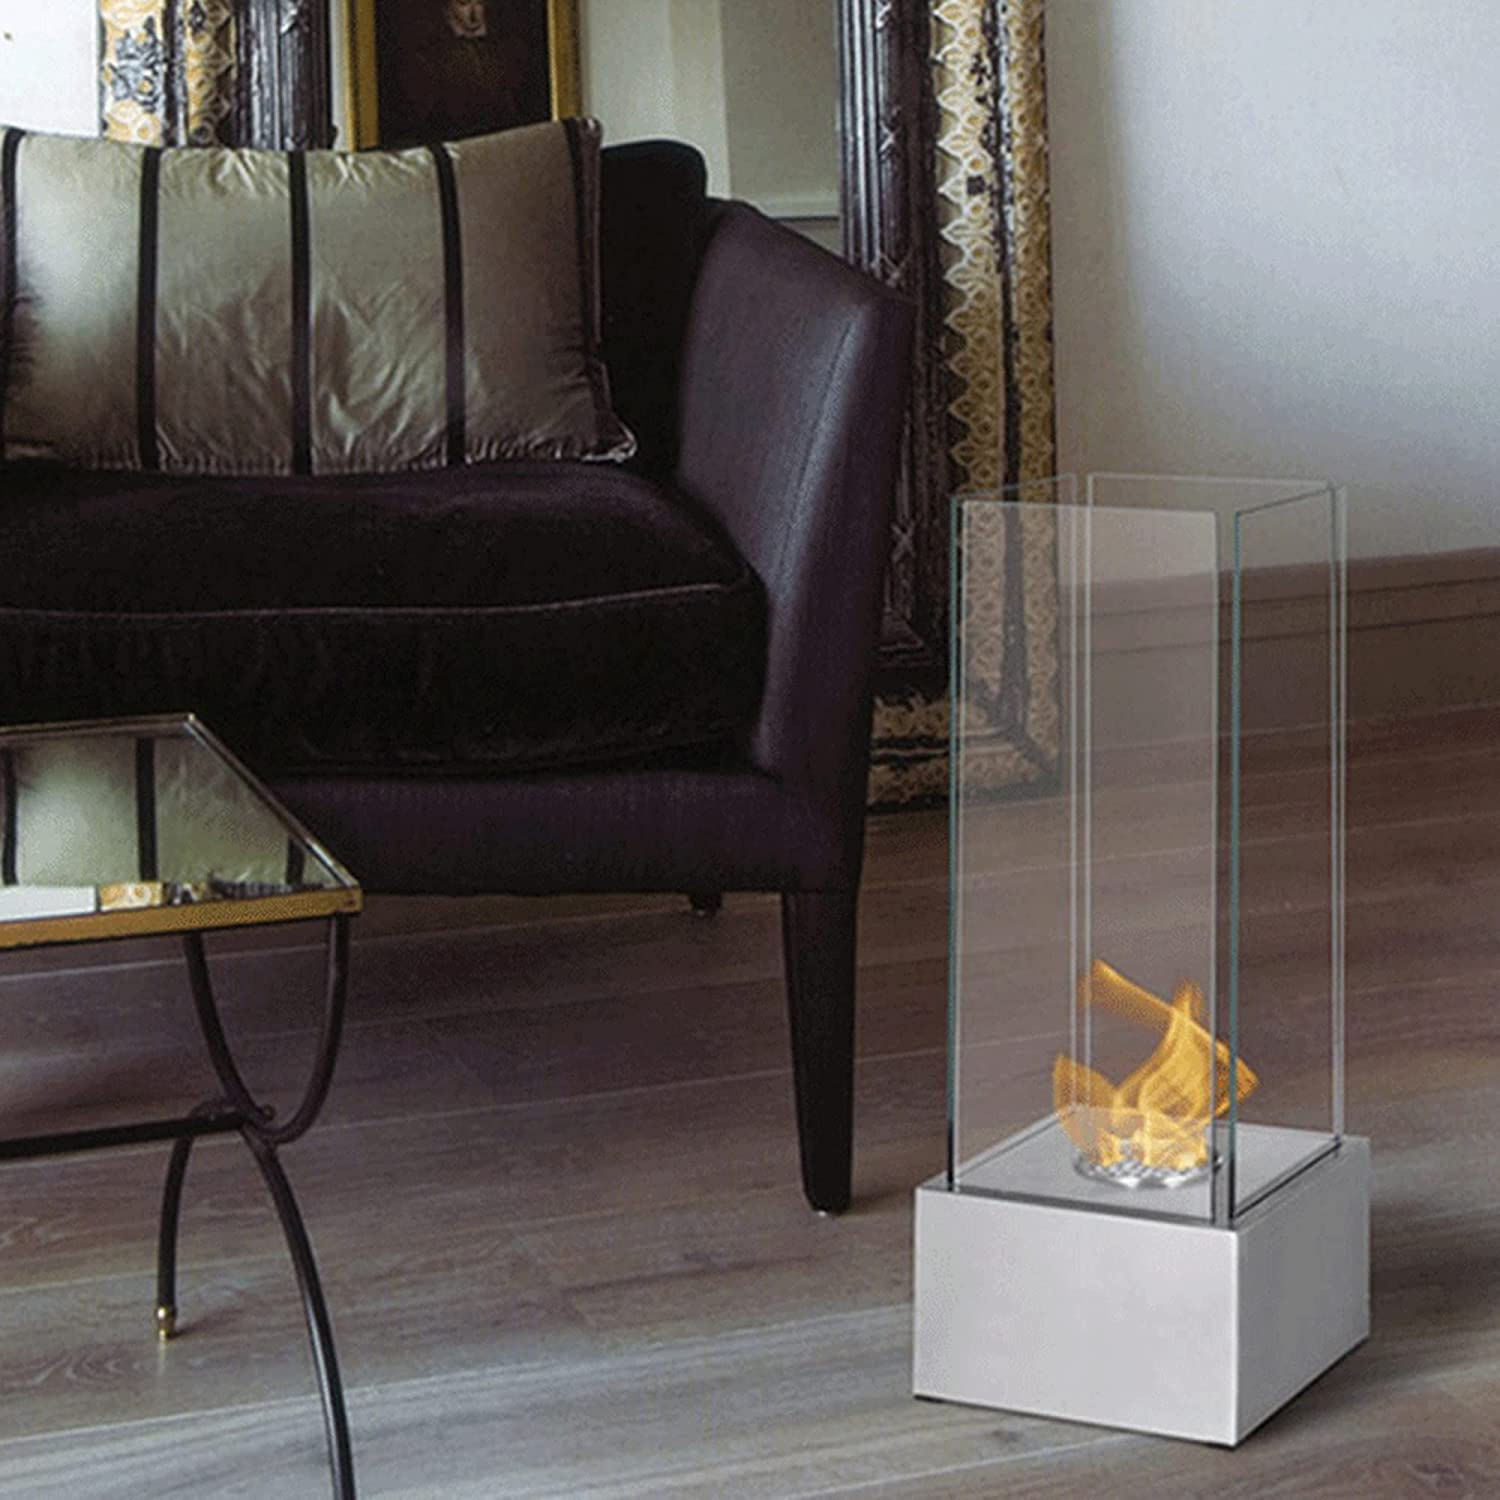 Portable Tabletop Fireplace Outdoor Colorado Springs Mall Fire Spasm price Clean Pit Bu